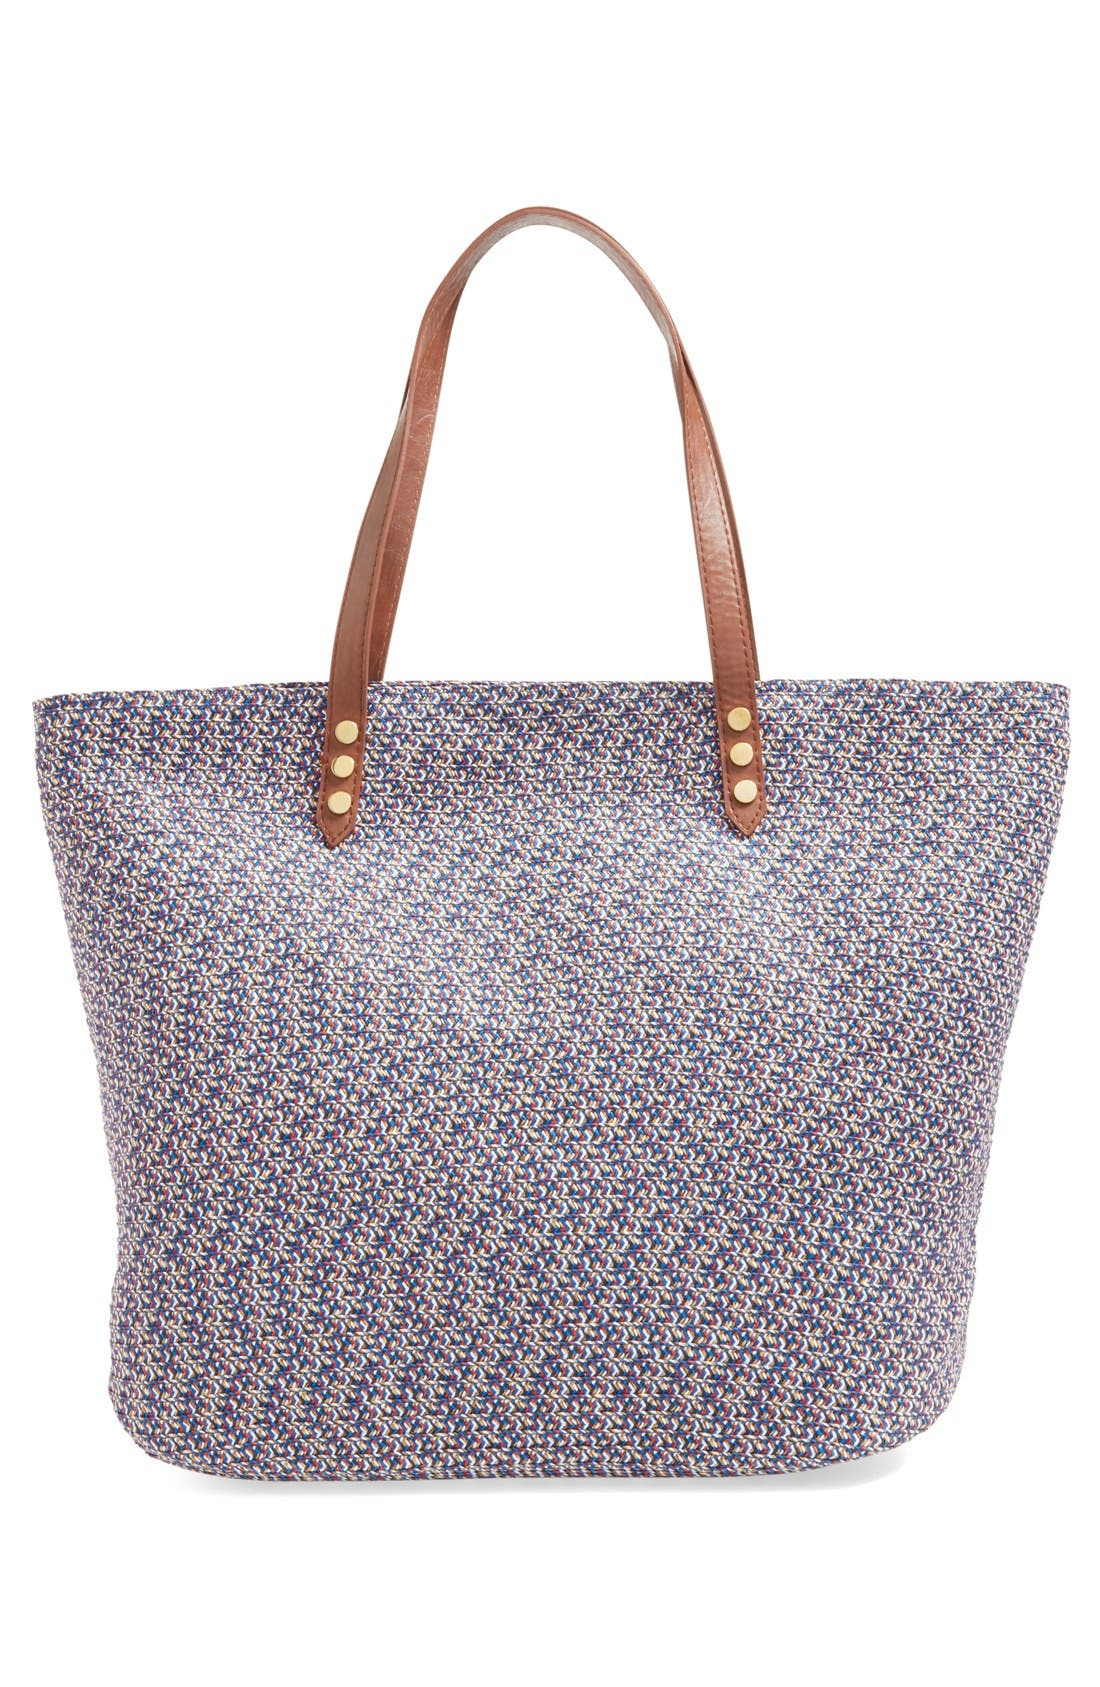 Woven Straw Tote,                             Alternate thumbnail 5, color,                             440